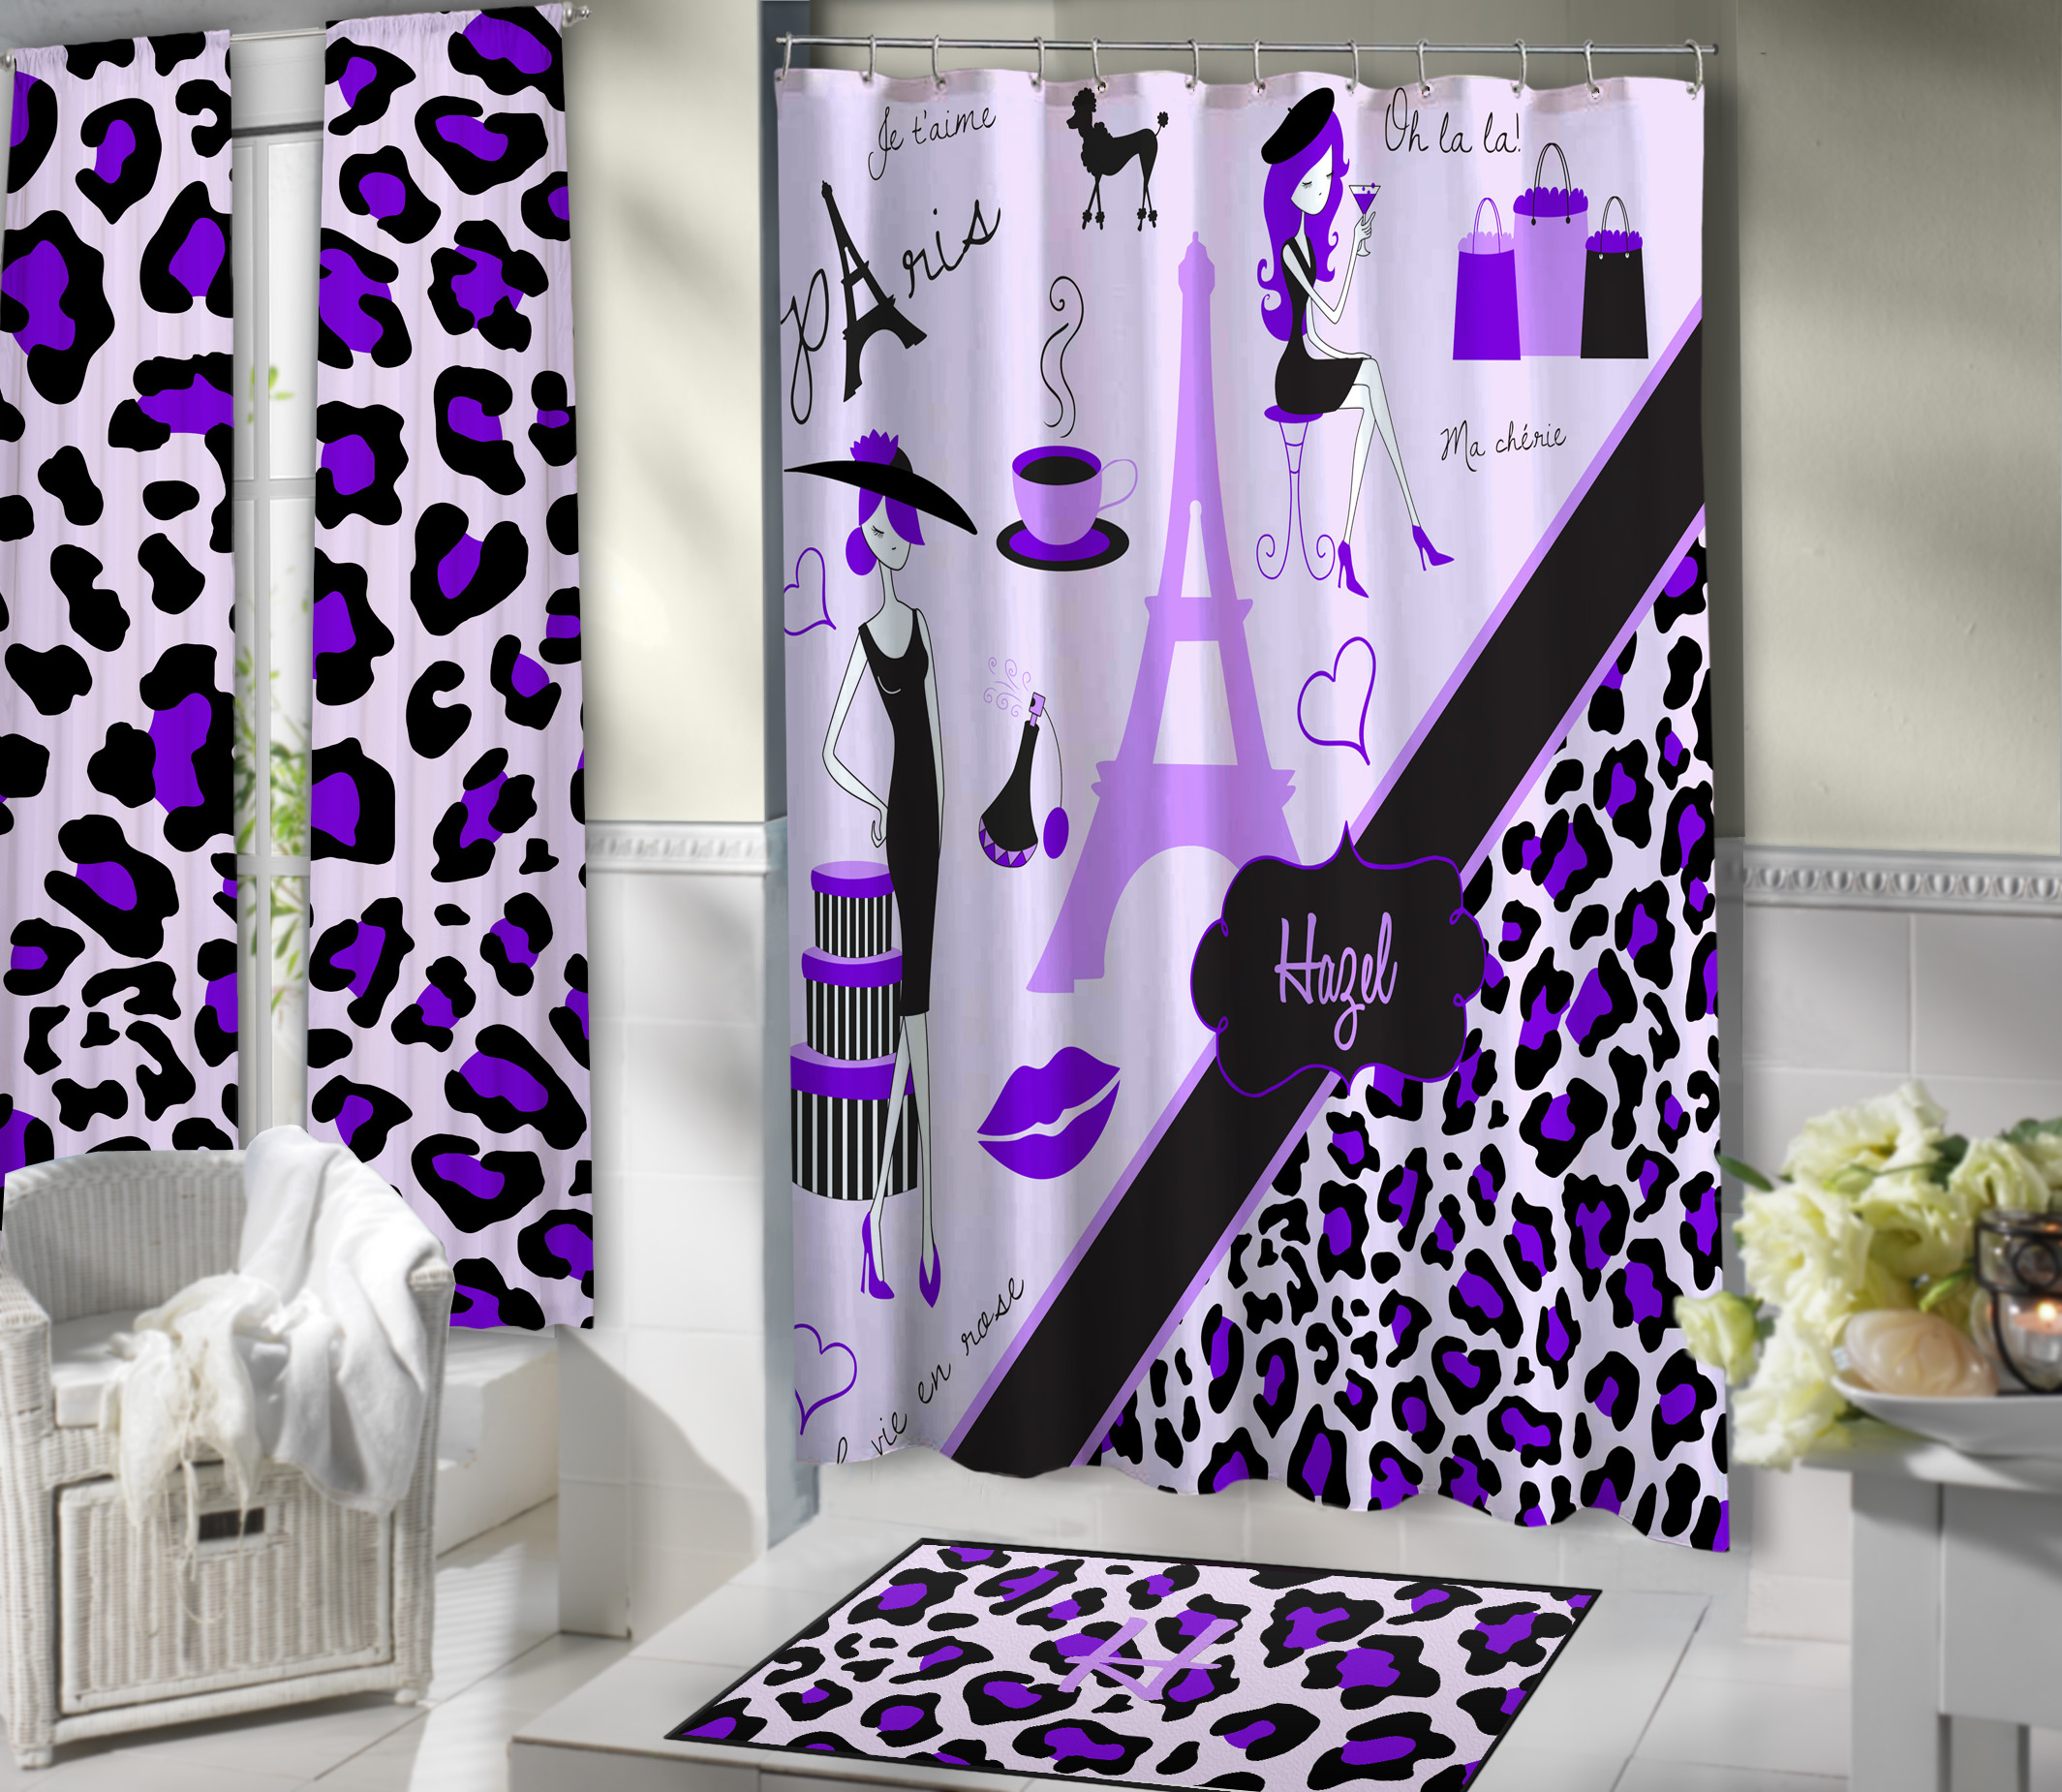 Paris Girls Shower Curtain With Purple Eiffel Tower And